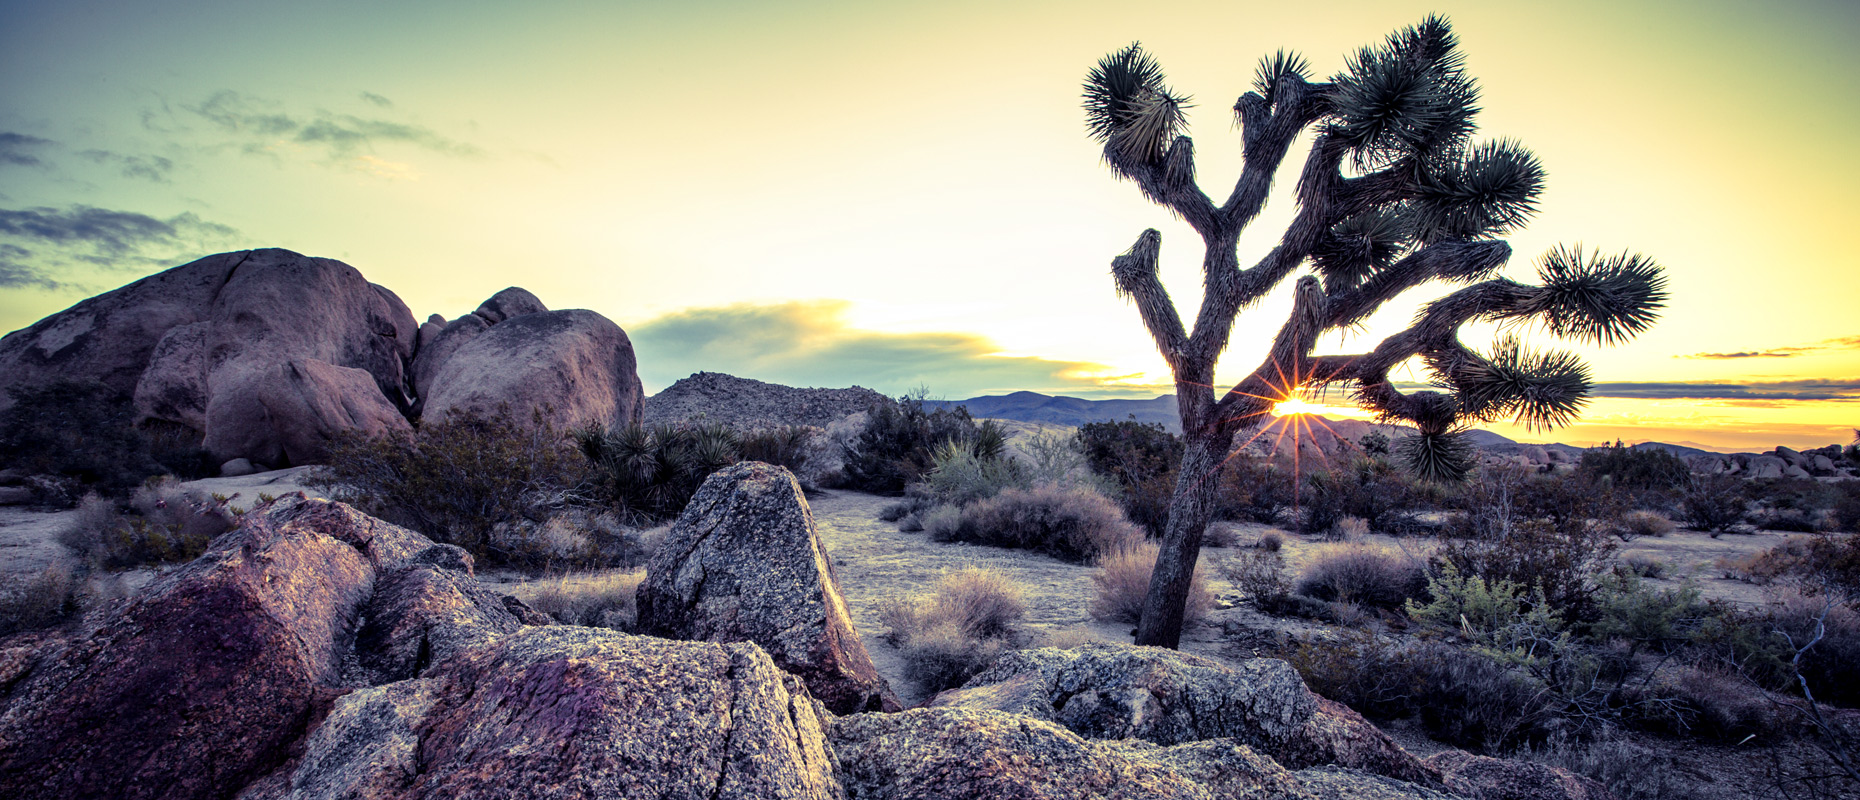 Joshua tree sunrise in desert